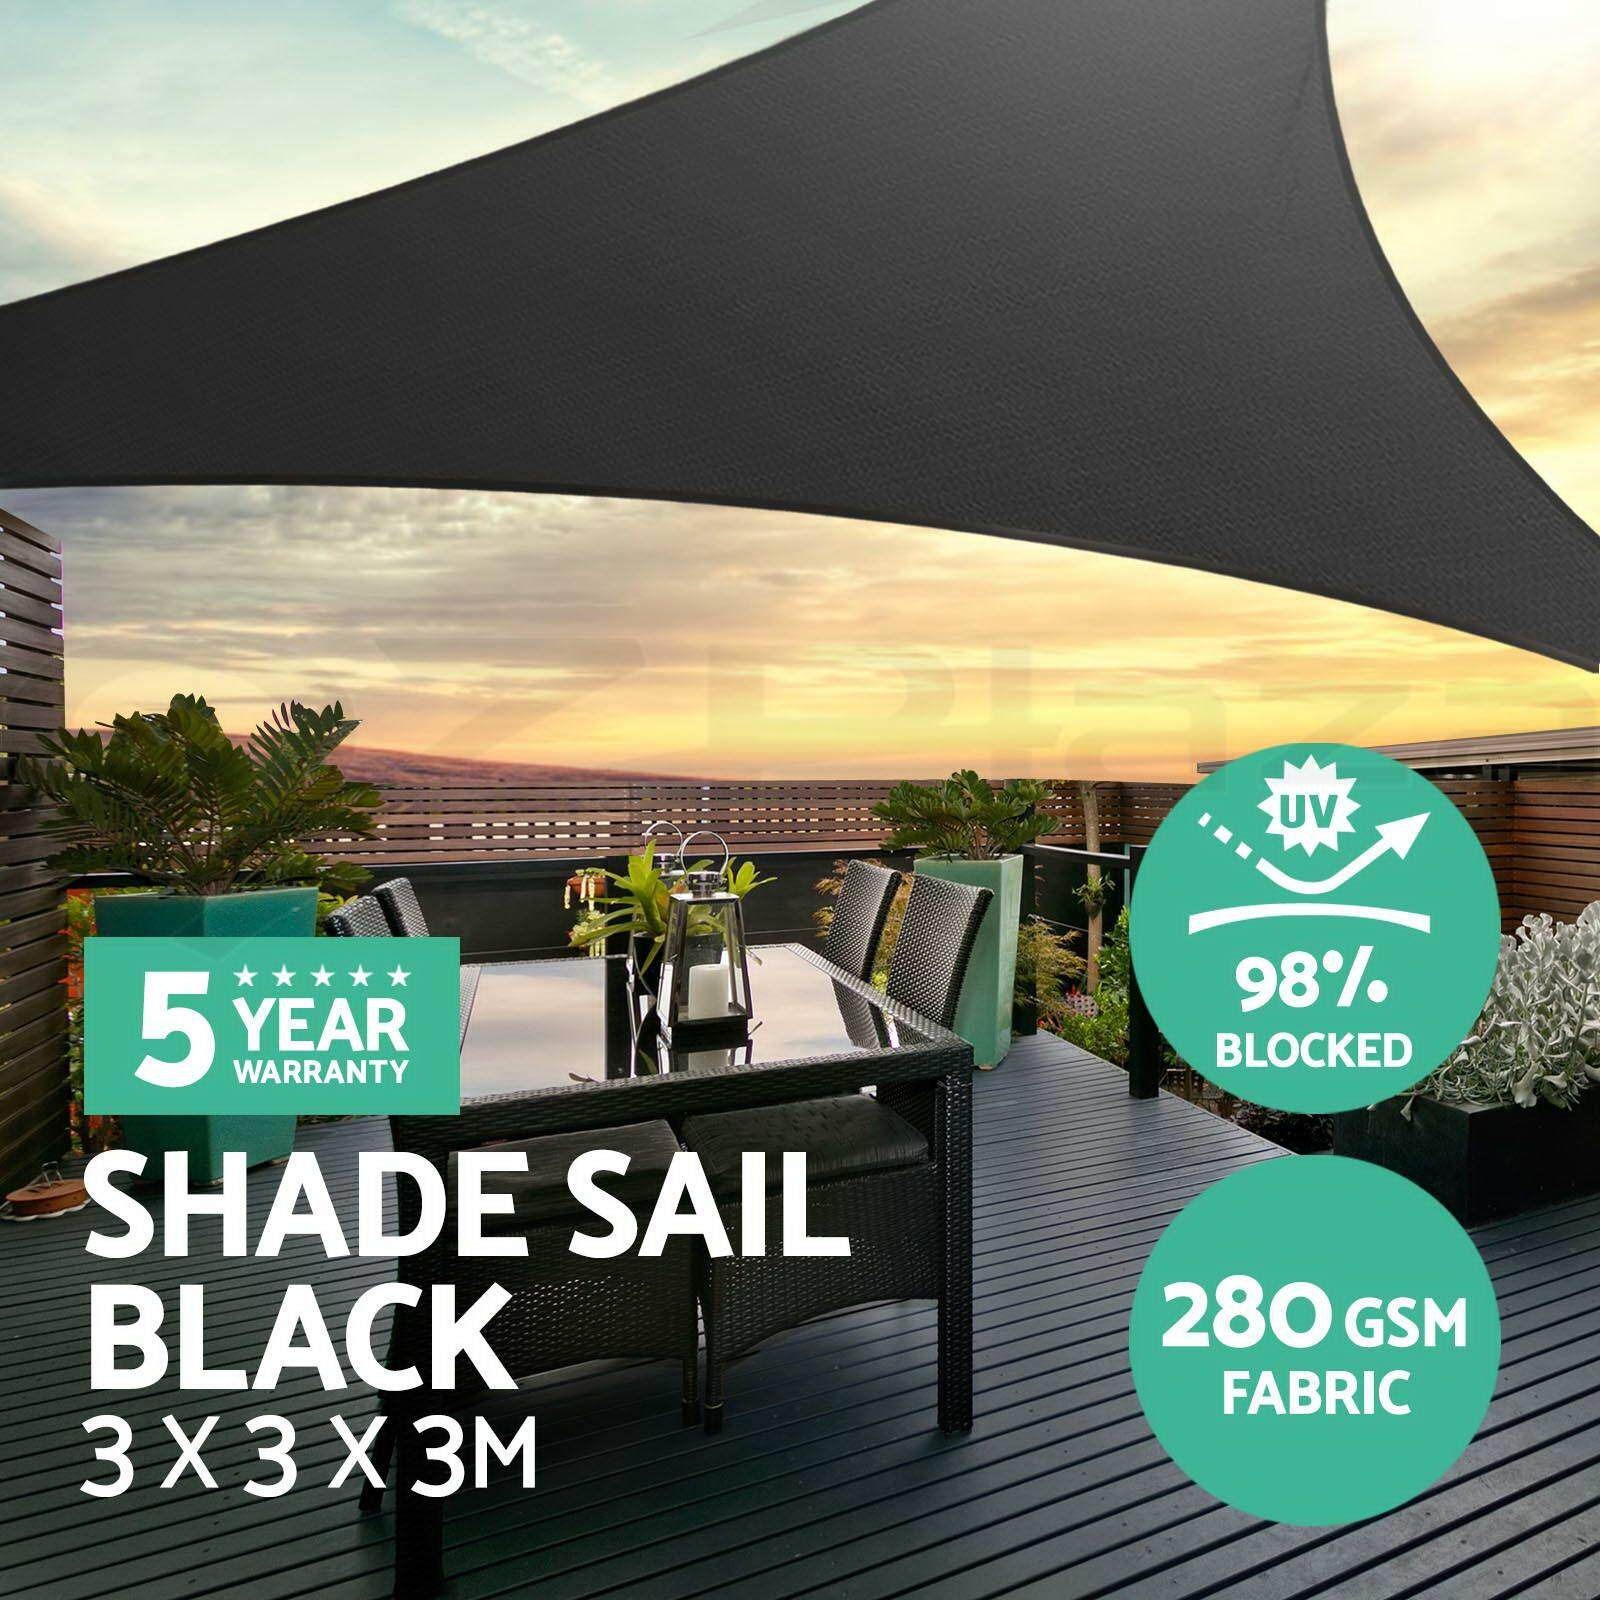 Extra Heavy Duty Shade Sail Sun Canopy Outdoor Triangle Square Rectangle Black  5*5*5m By Moonbeam.